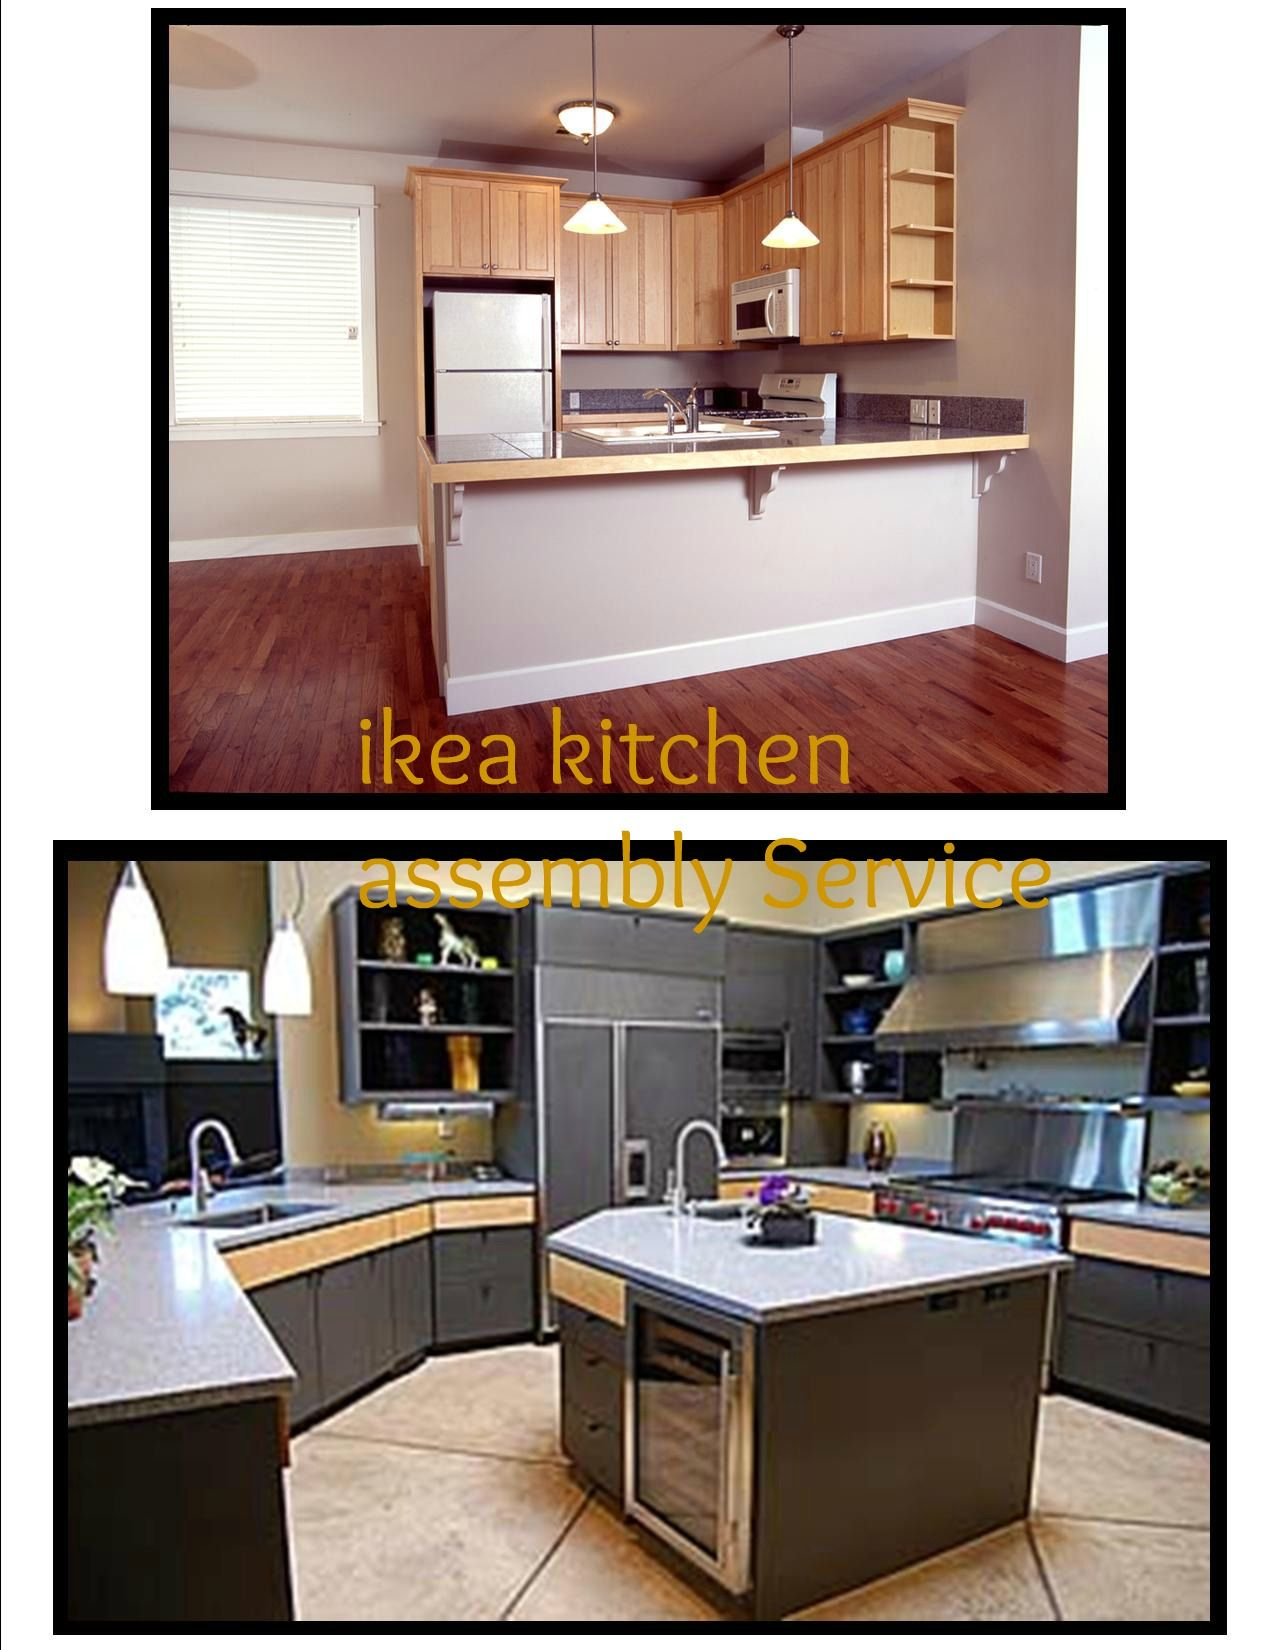 14 Tips For Assembling And Installing Ikea Kitchen Cabinets Ikea Kitchen Cabinets Ikea Kitchen Remodel White Ikea Kitchen